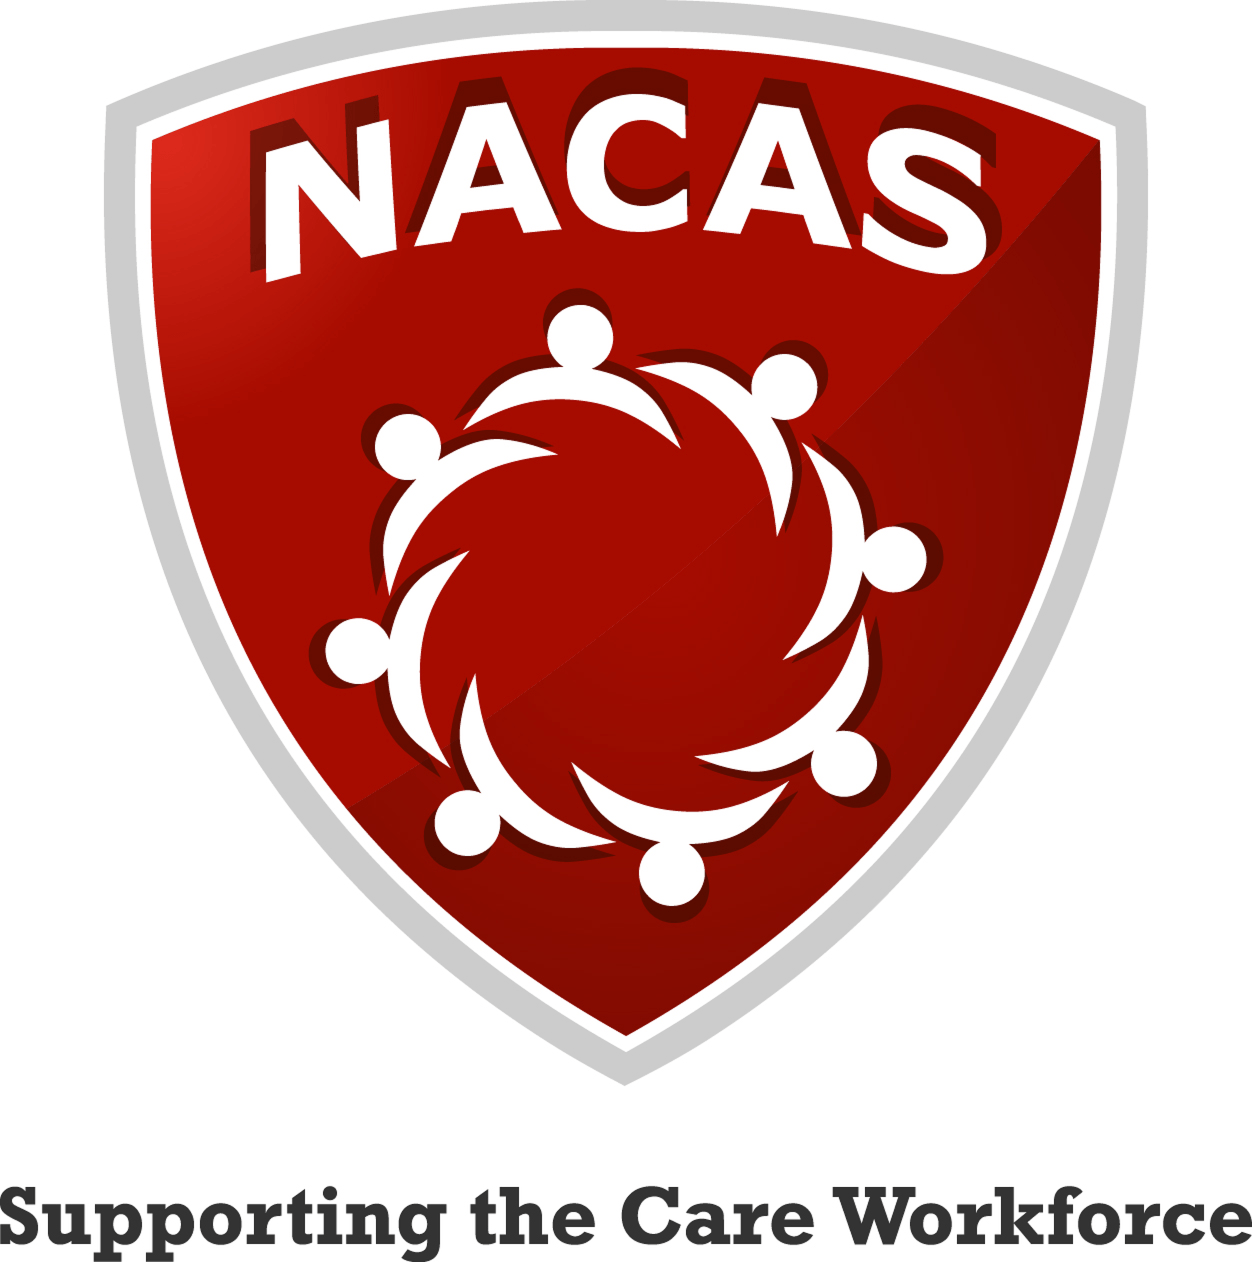 The National Association of Care & Support Workers Ltd